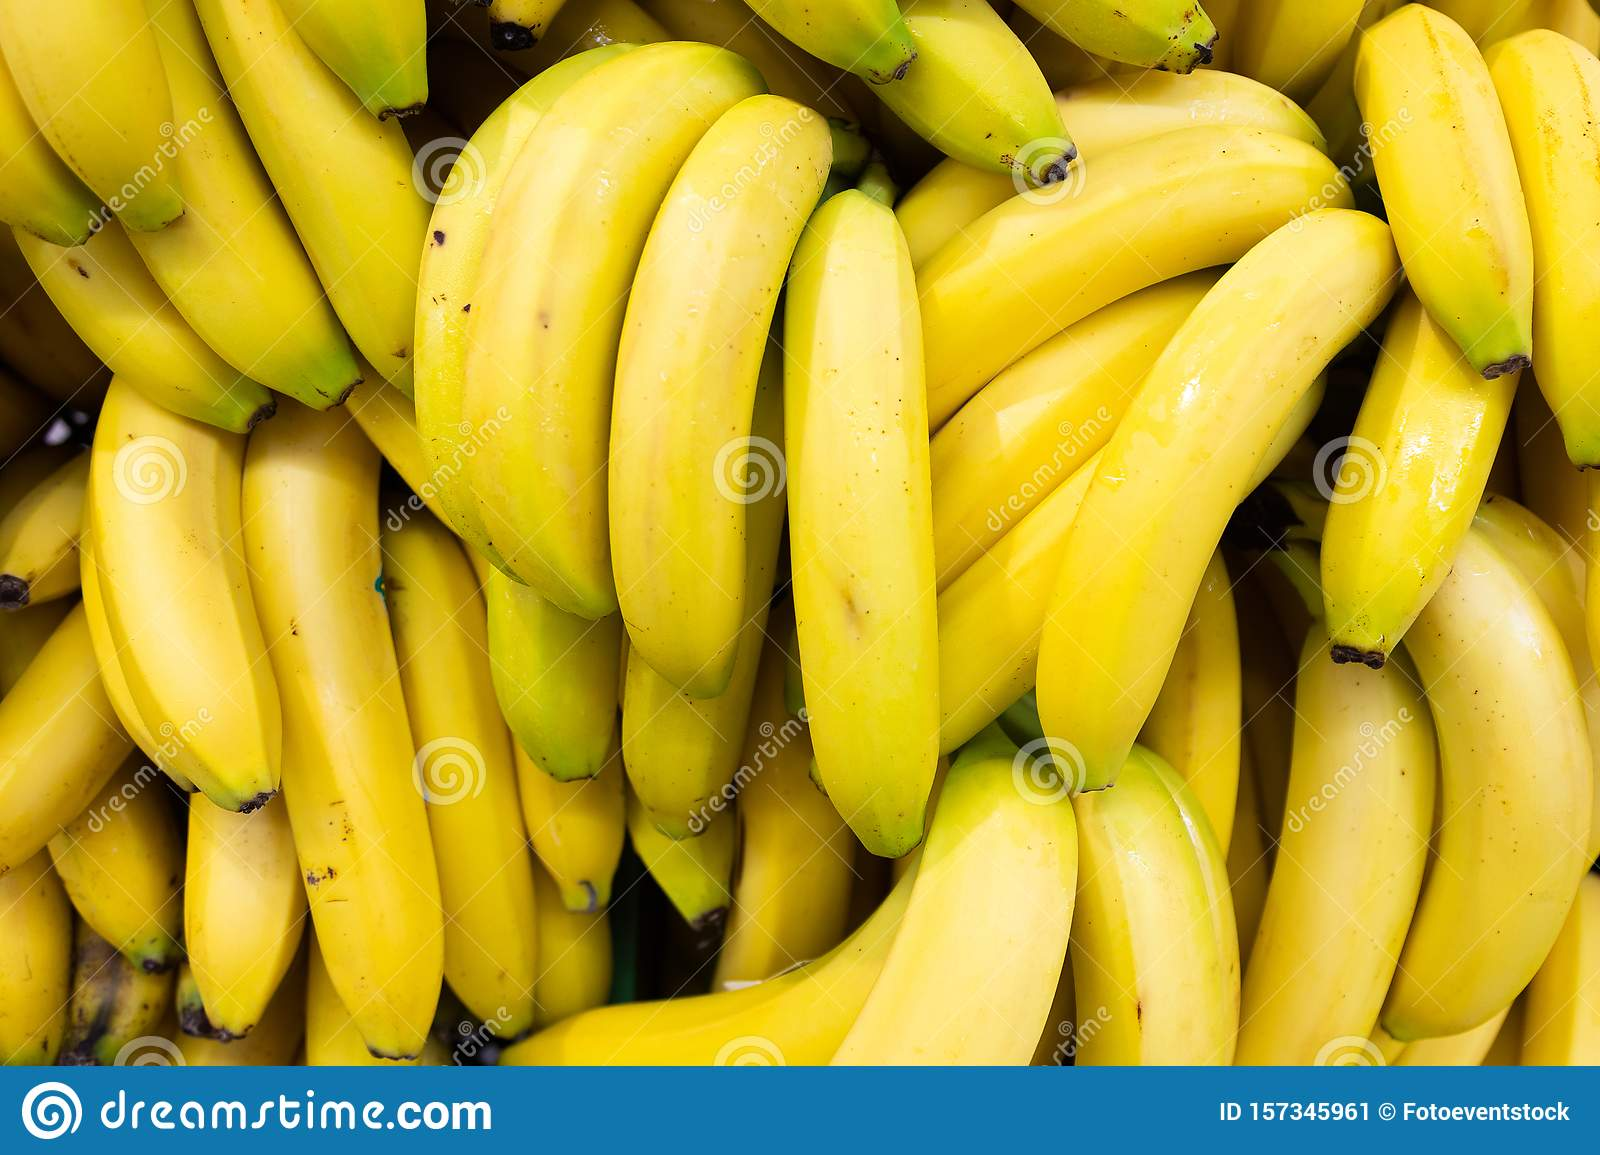 Whole Bundle Of Yellow Ripe Bananas Rich In Vitamin C For Food Background Stock Image Image Of Vegetarian Health 157345961